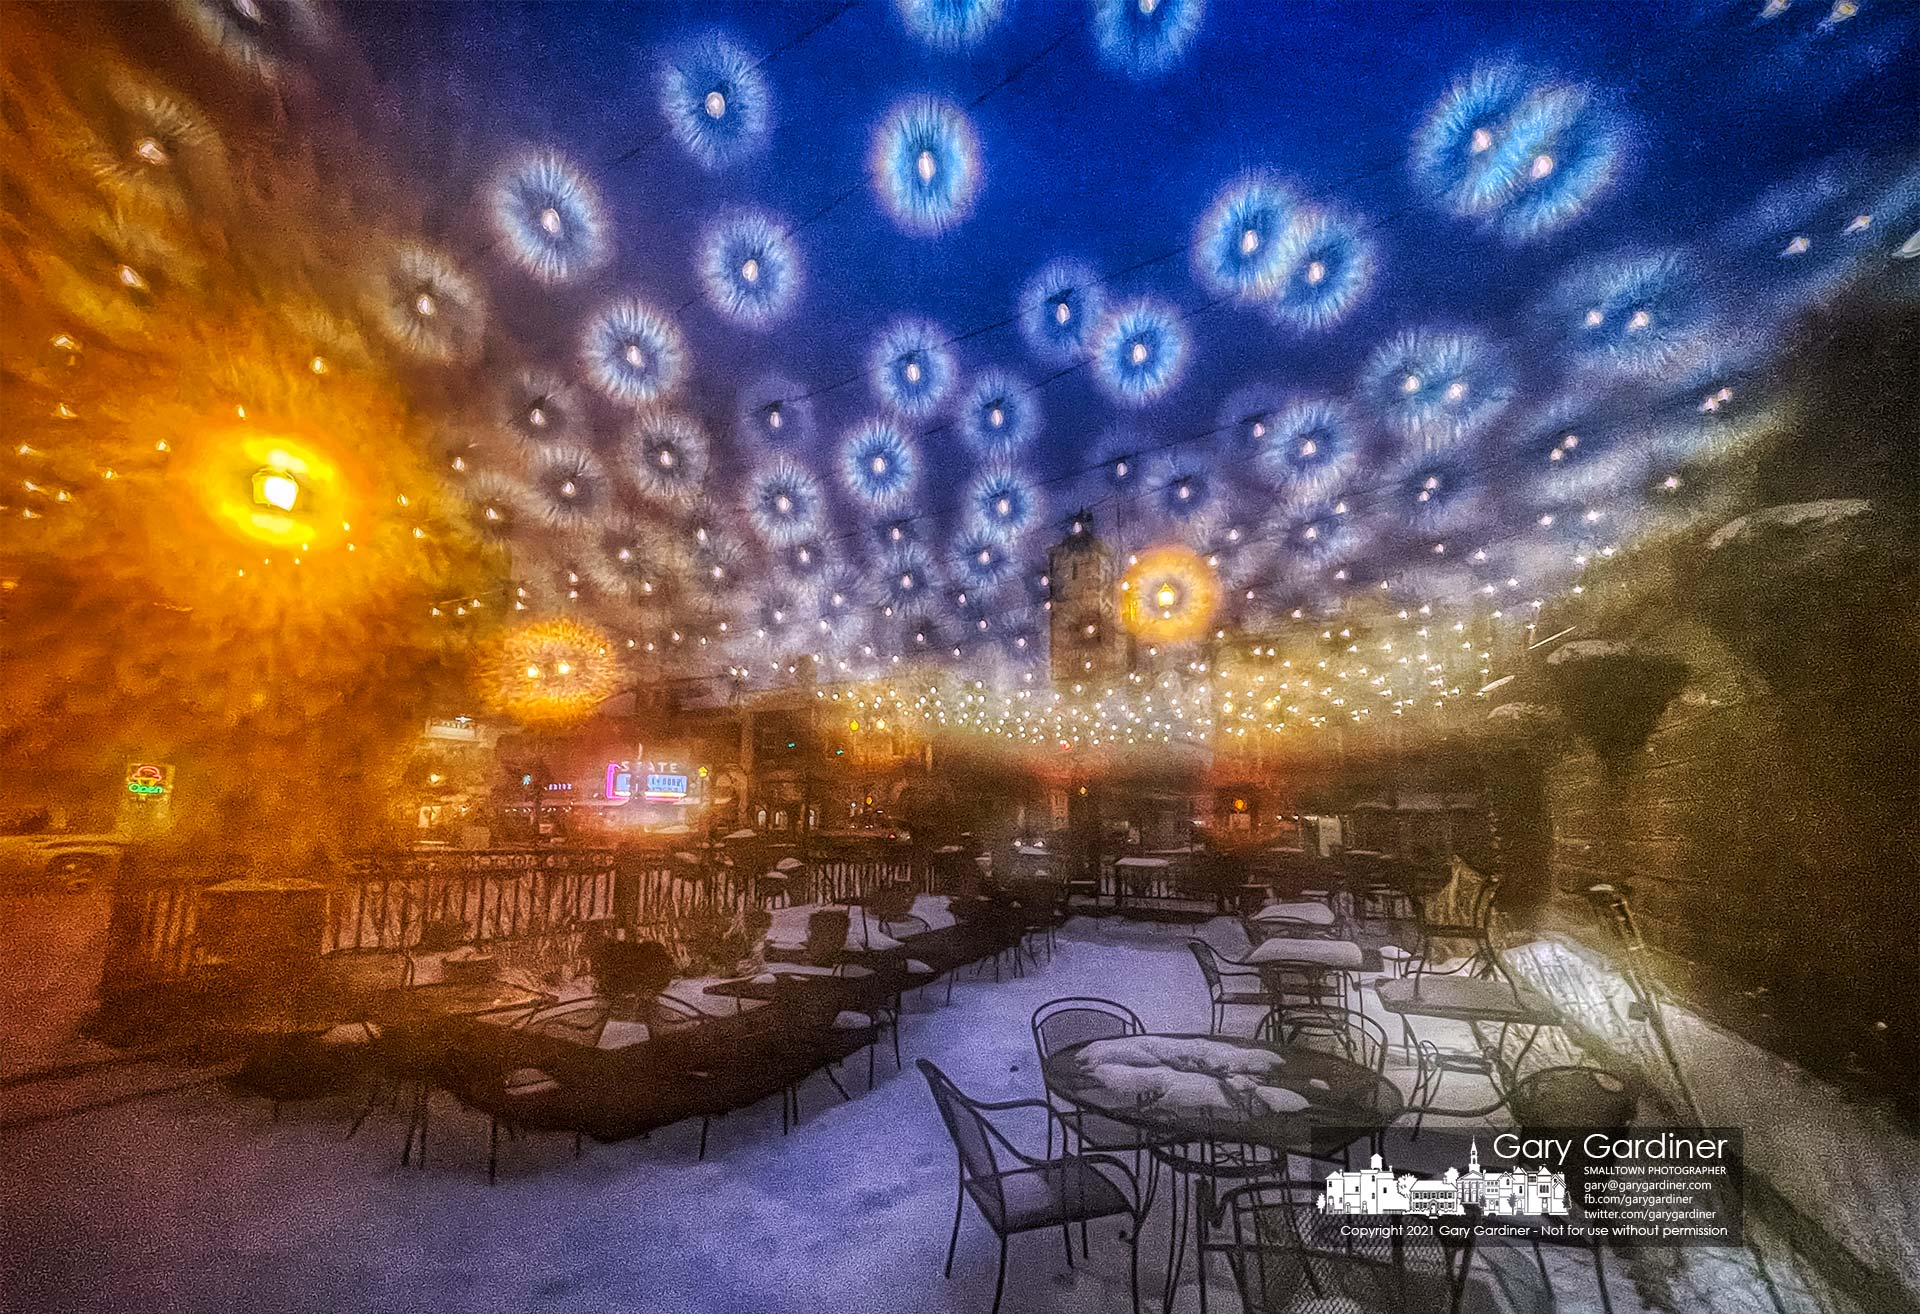 The patio lights at Jimmy V's glisten during a sleet storm that preceded the forecast for heavy overnight snow in Central Ohio. My Final Photo for Feb. 15, 2021.